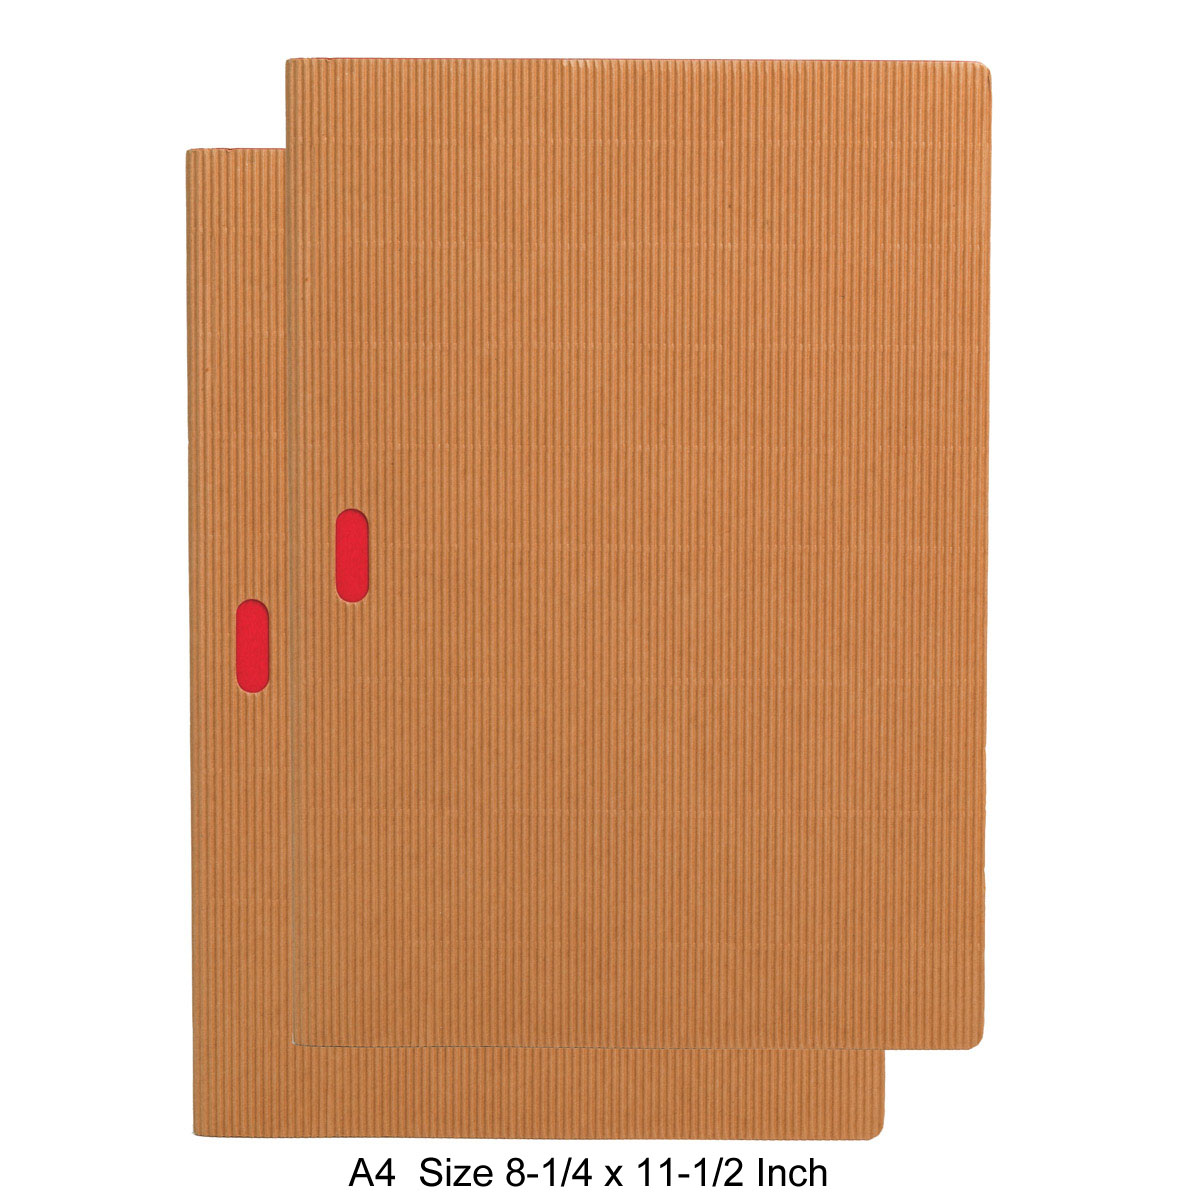 Paper-Oh Ondulo Cahier Notebook A4 Size Set of 2